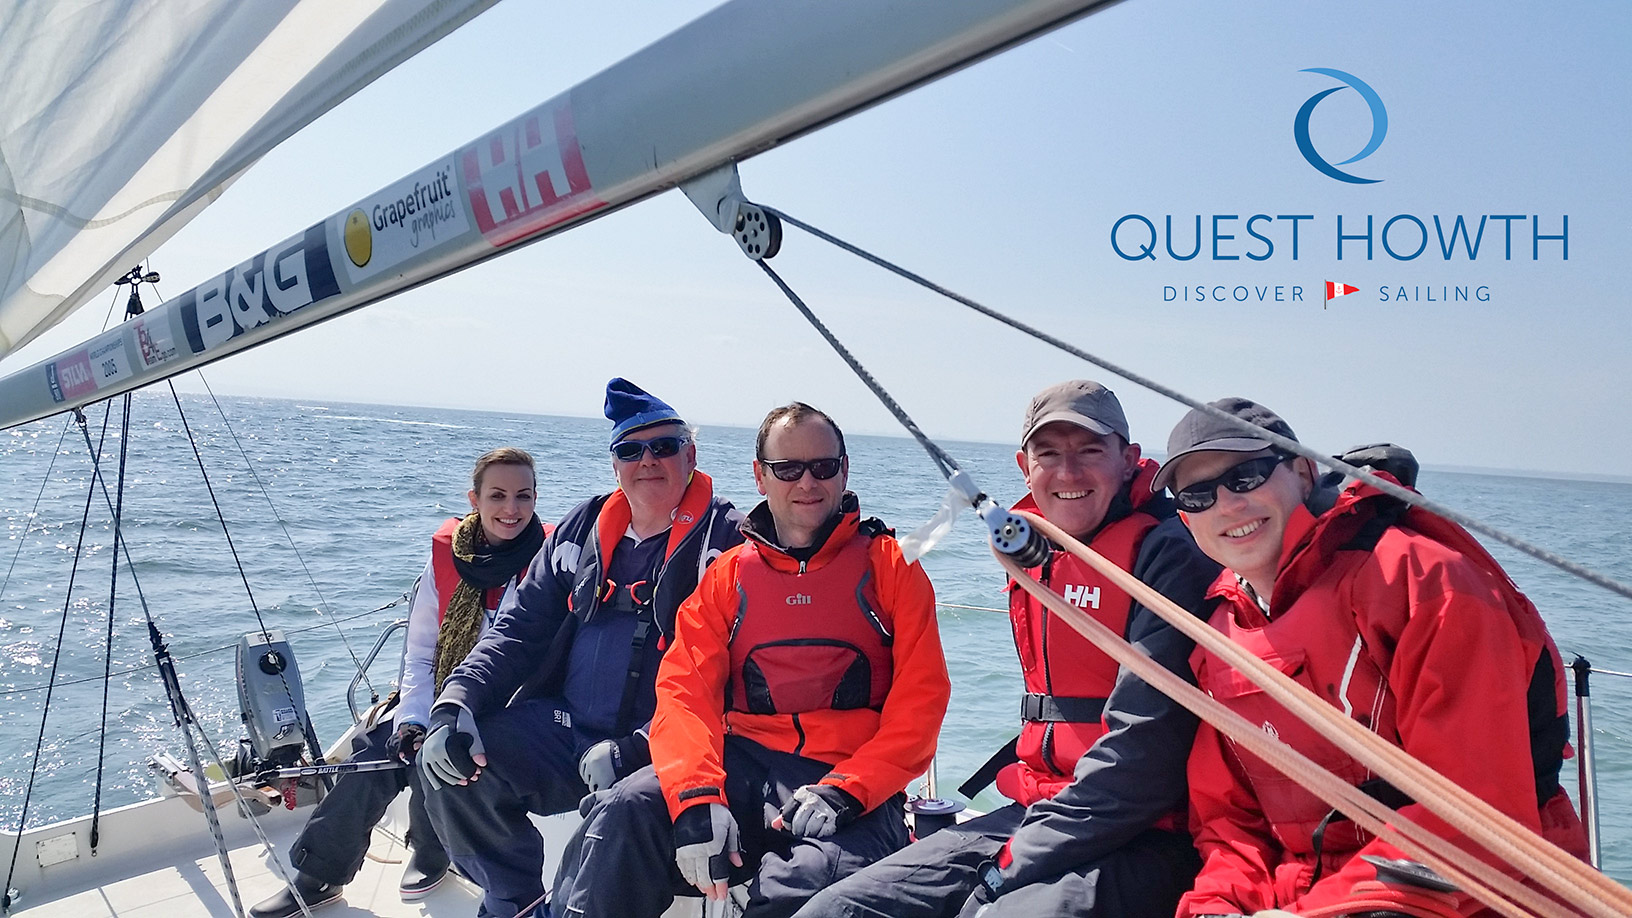 Corporate Sailing With Quest Howth - Discover Sailing